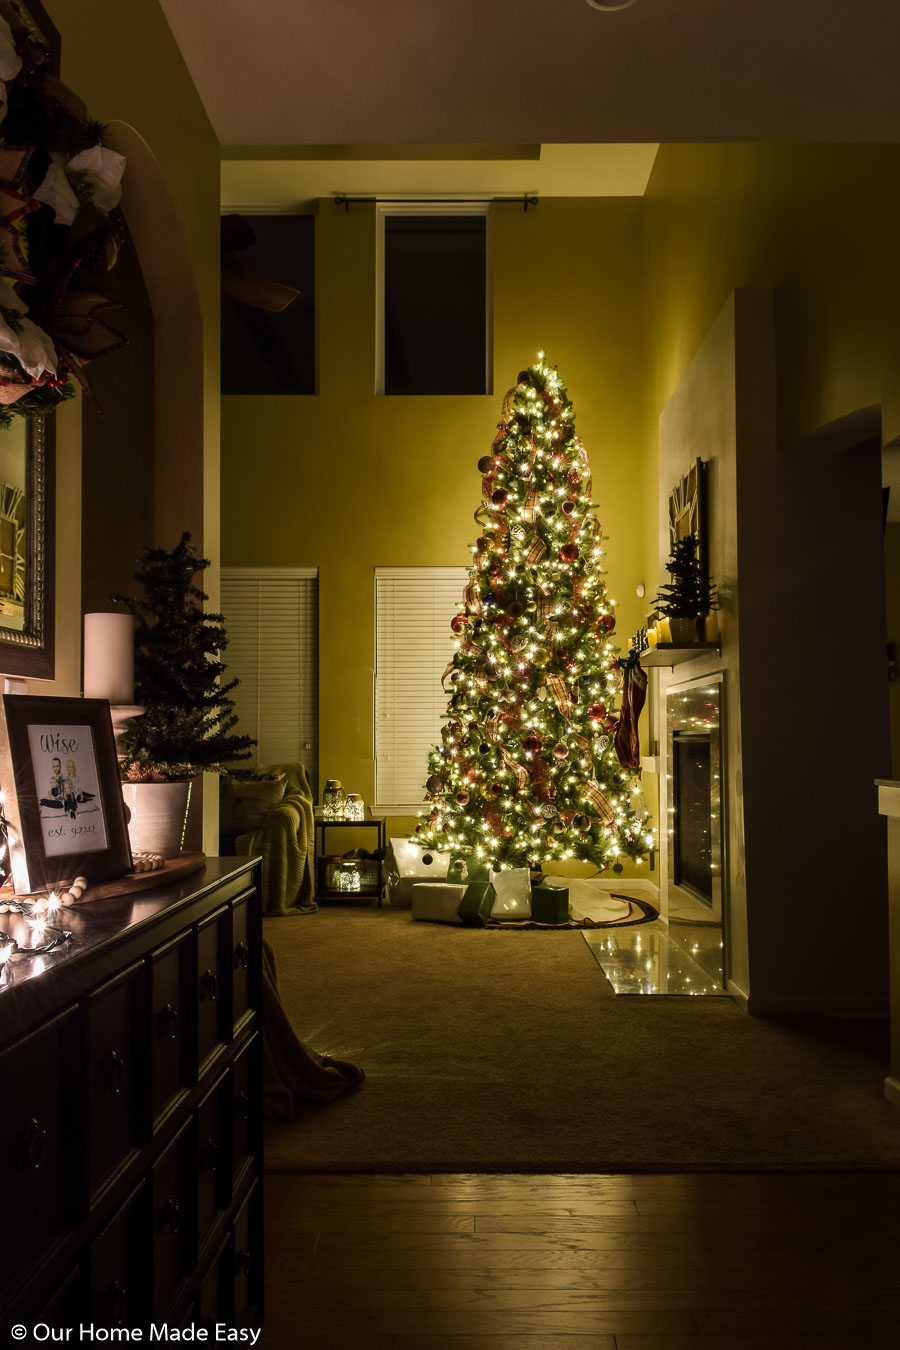 Our home's entry way has subtle Christmas decor, leaving the focus on the bright Christmas tree in the living room